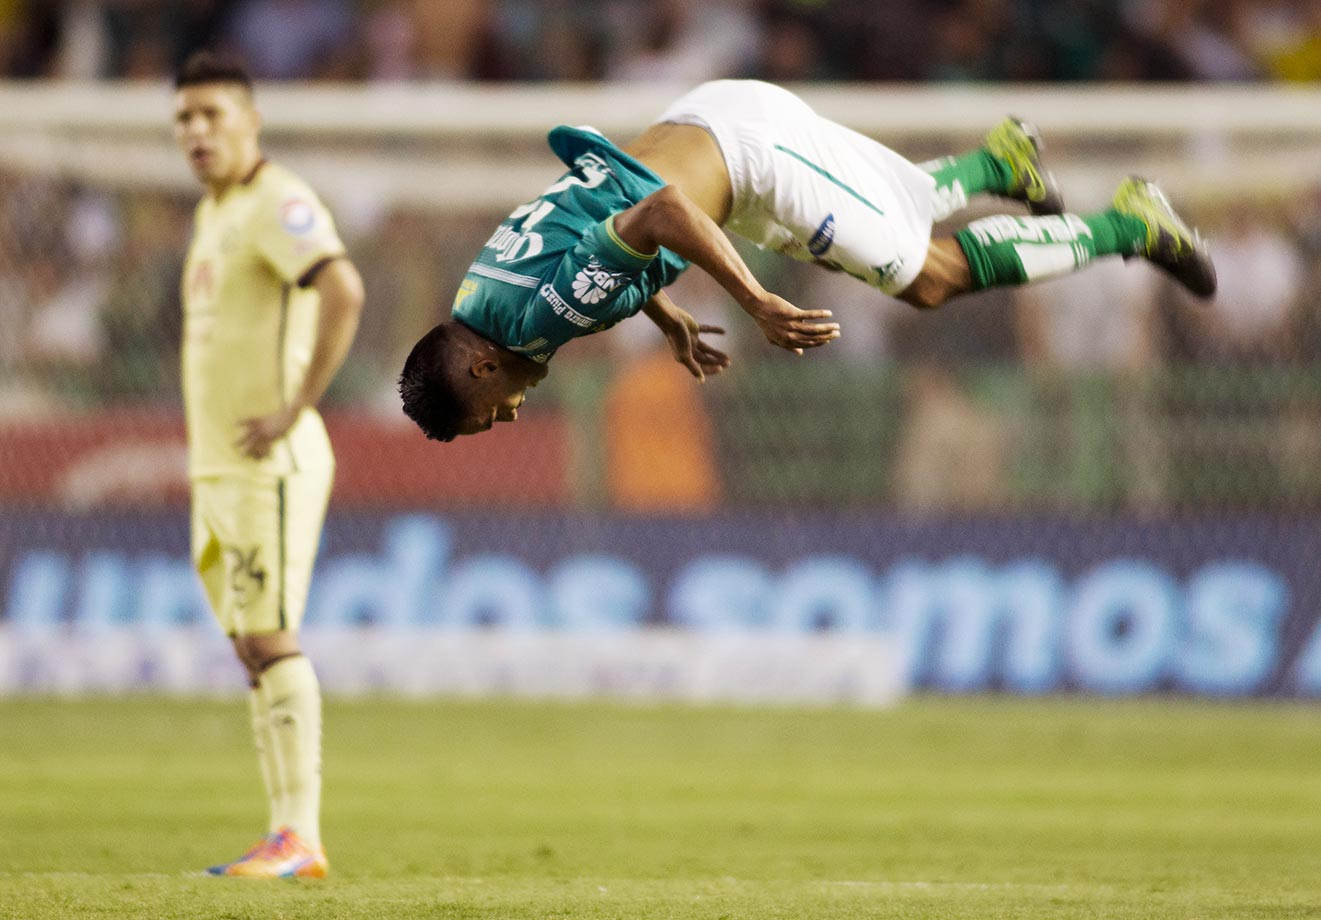 Jose Vazquez of Leon celebrates the second goal during a match between Leon and America.